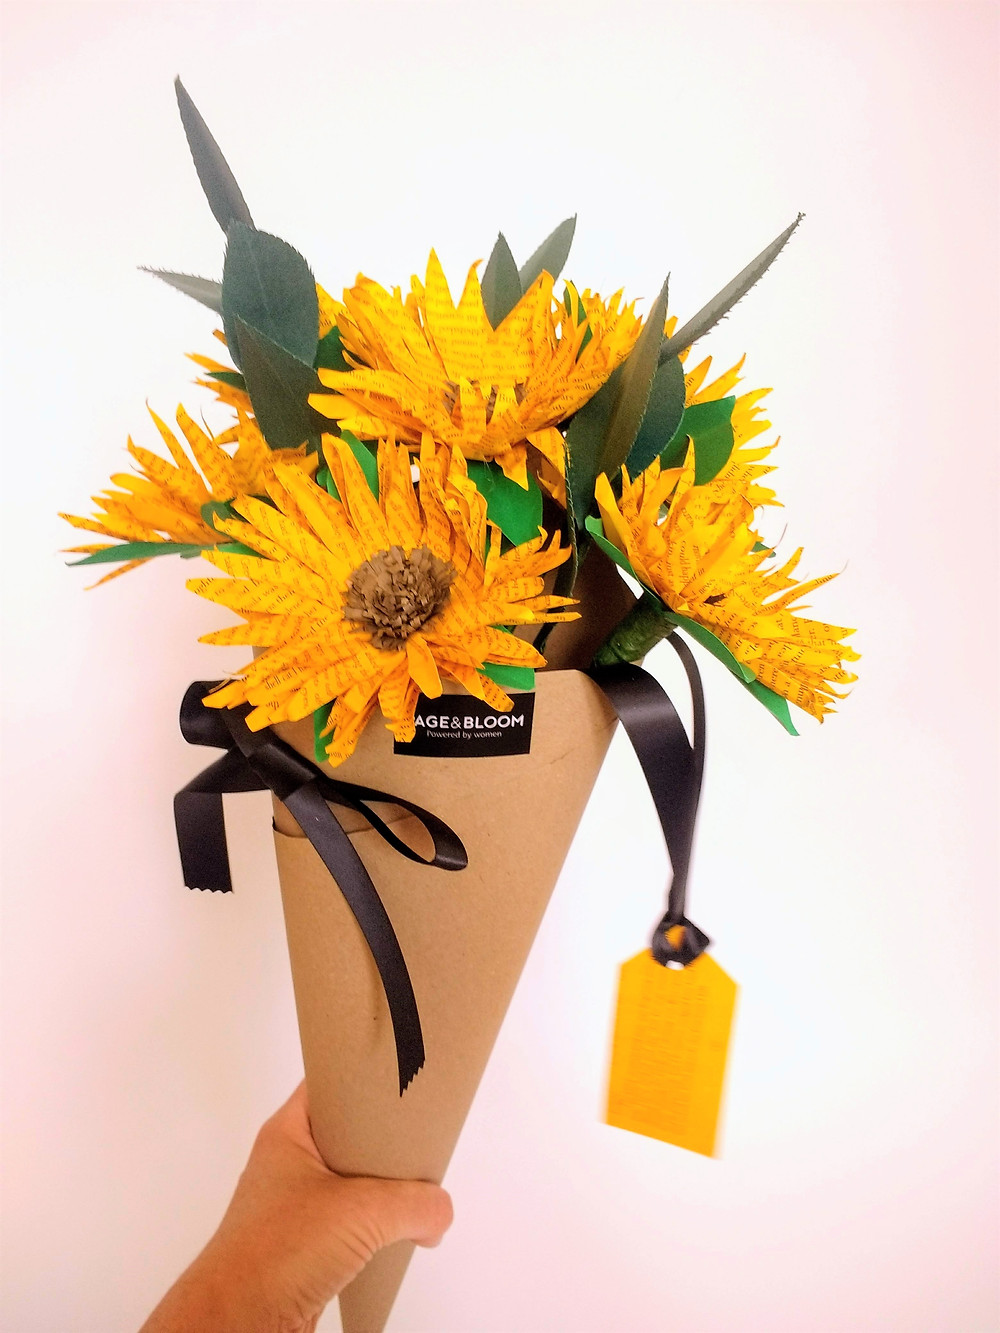 Paper sunflowers by Page & Bloom